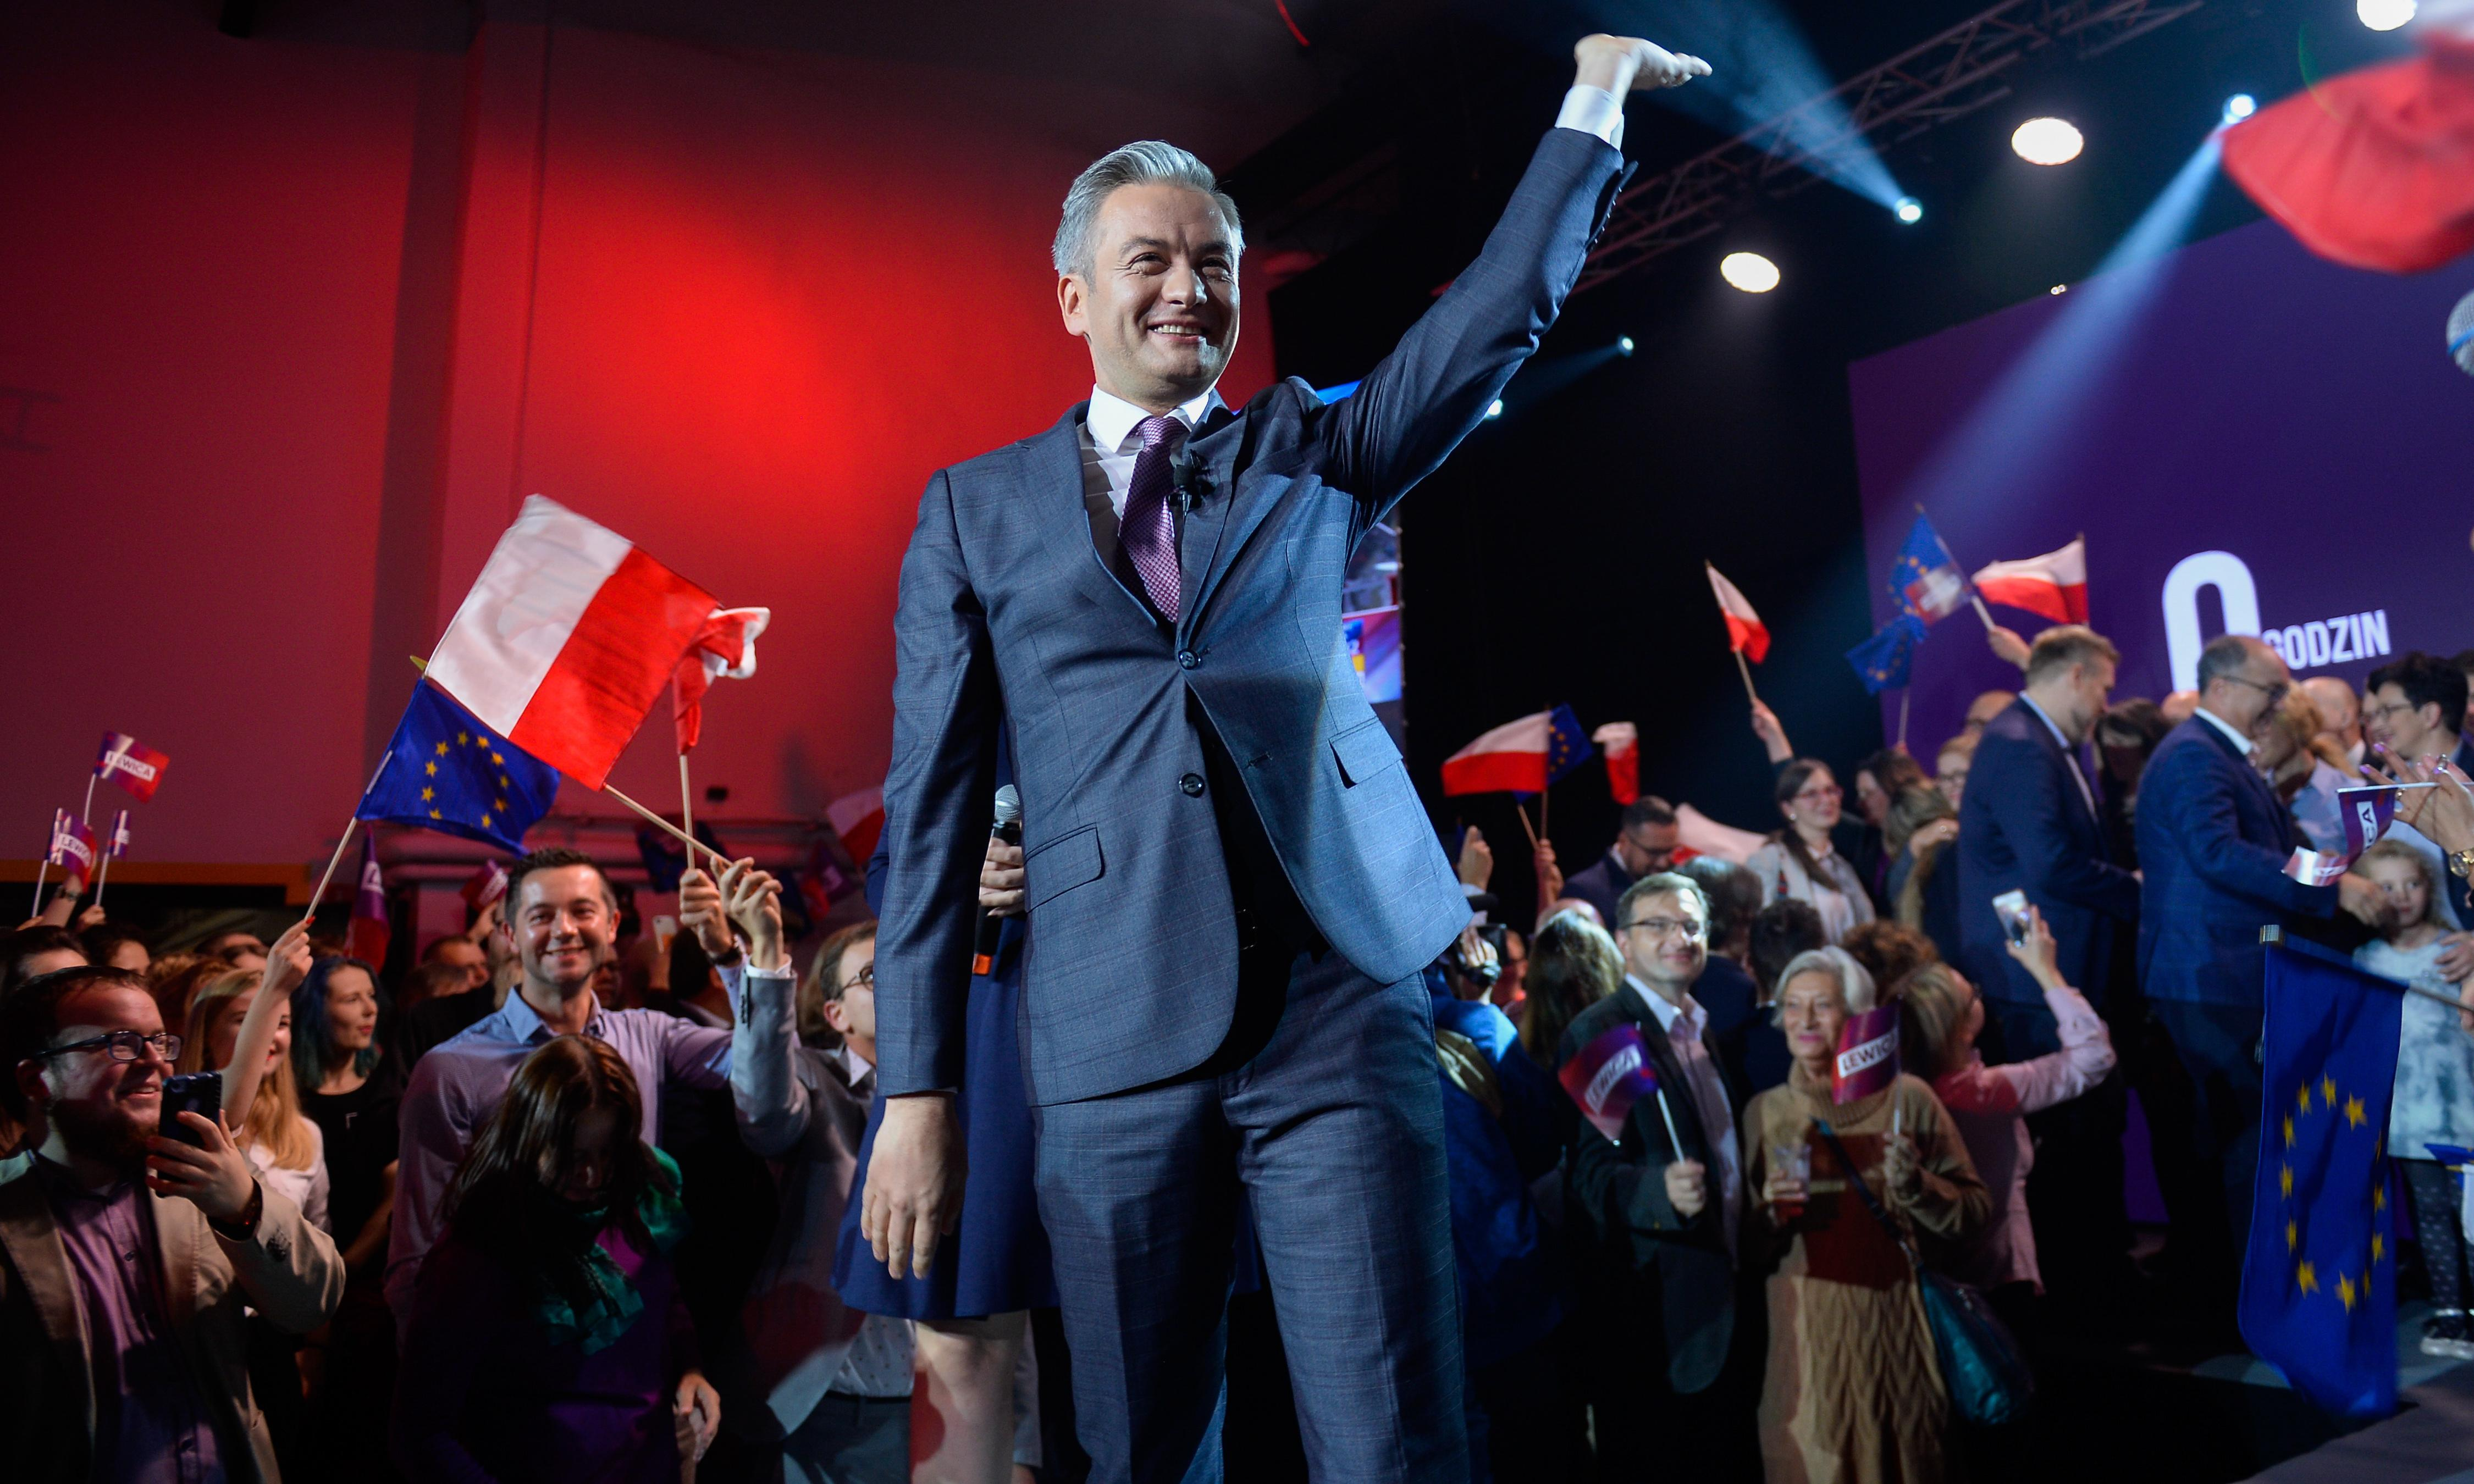 Election results give hope to opposition in Poland and Hungary